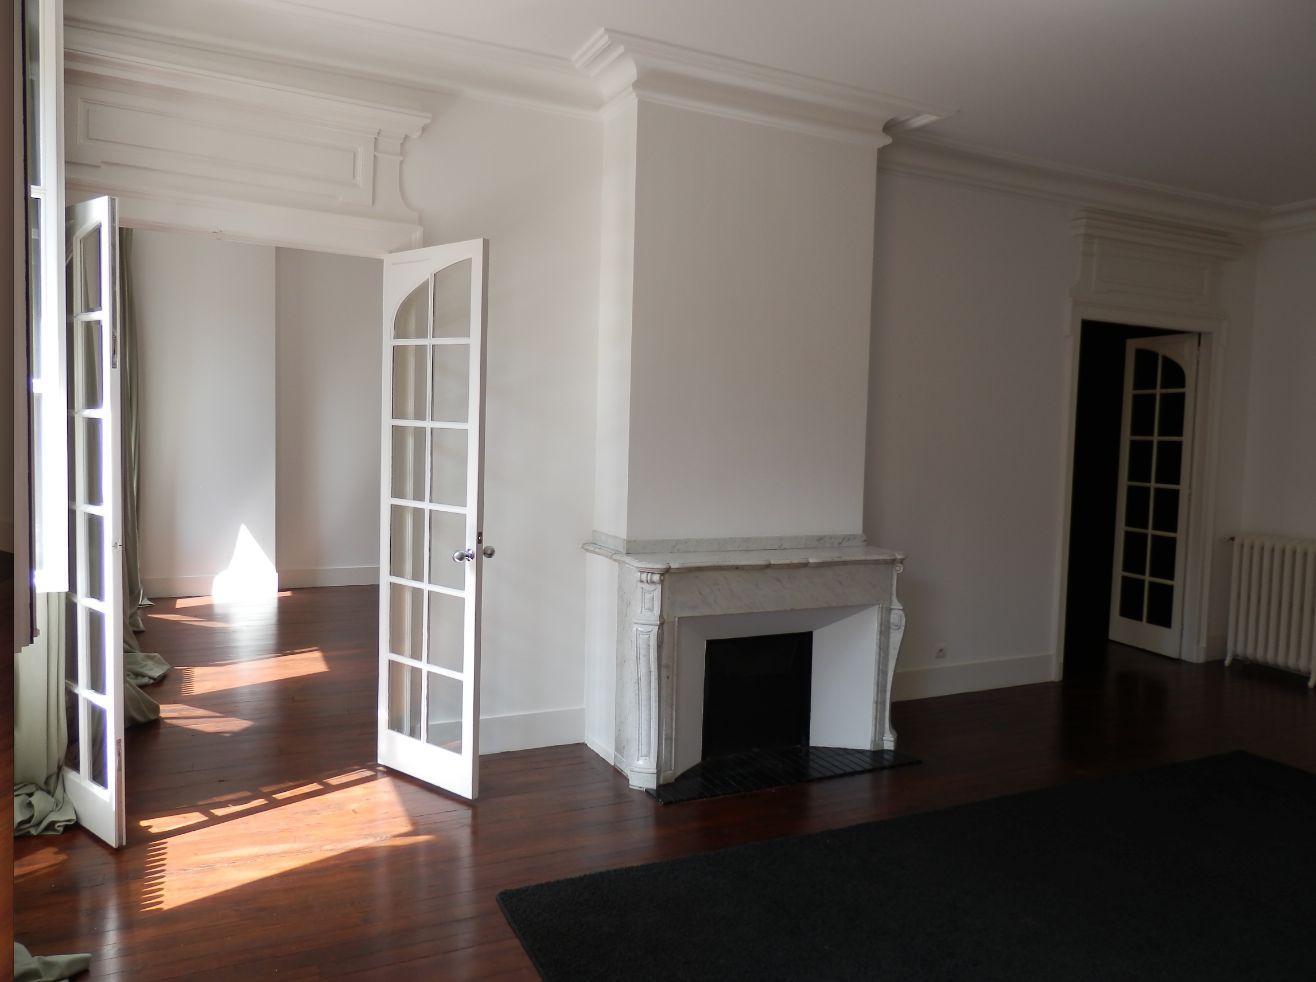 Achat appartement toulouse neuf ou ancien for Achat appartement dans le neuf